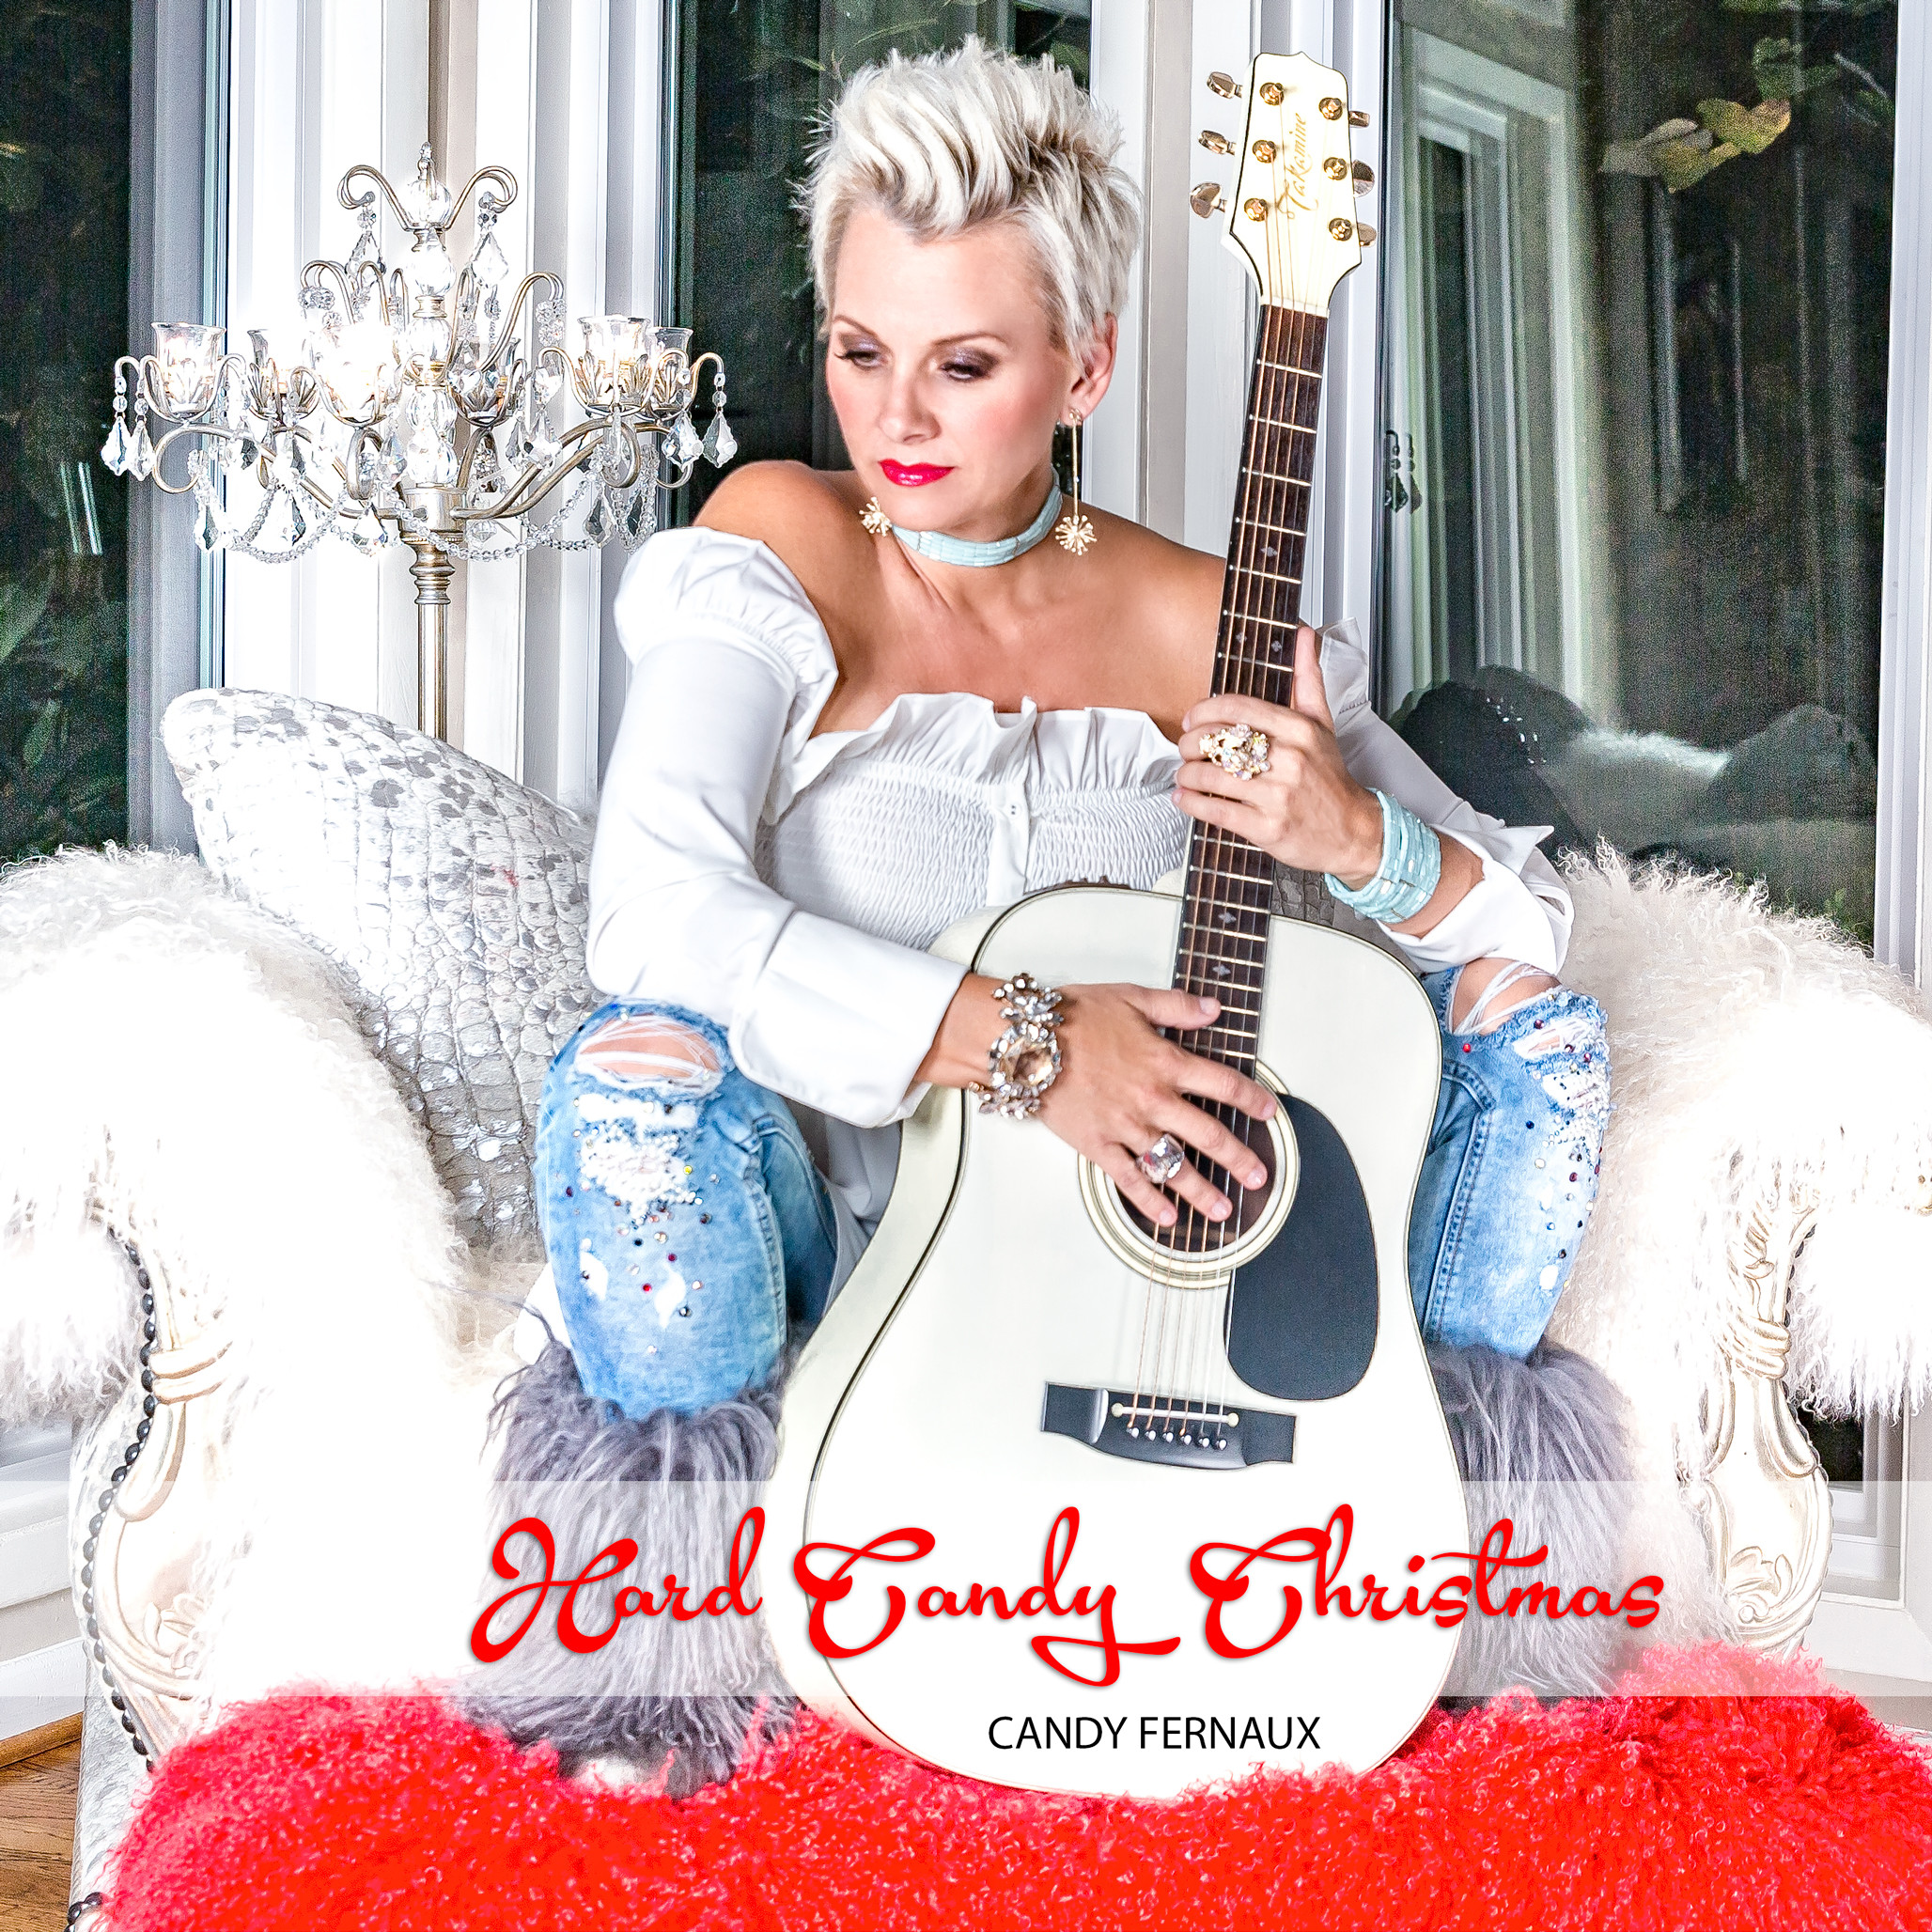 Dolly Parton Hard Candy Christmas  Hard Candy Christmas Candy Fernaux Country Music